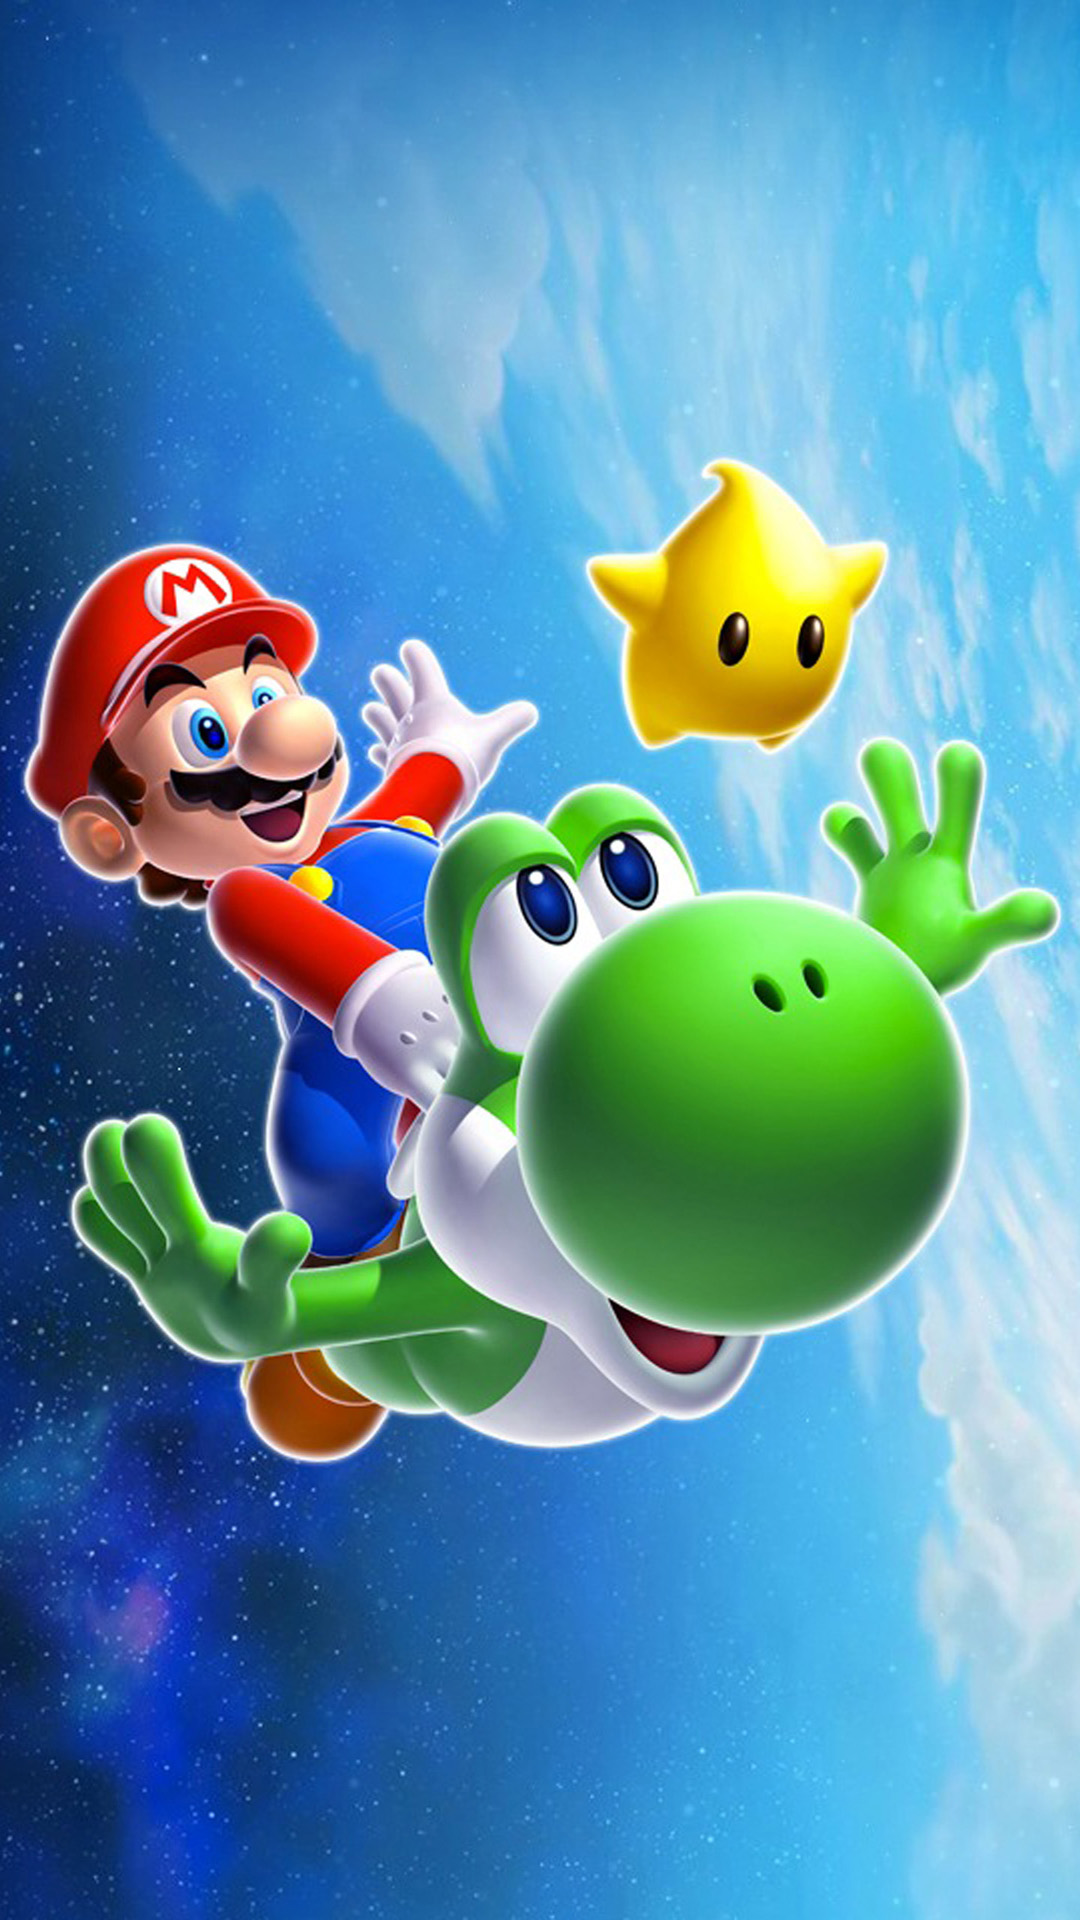 Free Download Hd Super Mario Bros World Mobile Phone Wallpapers